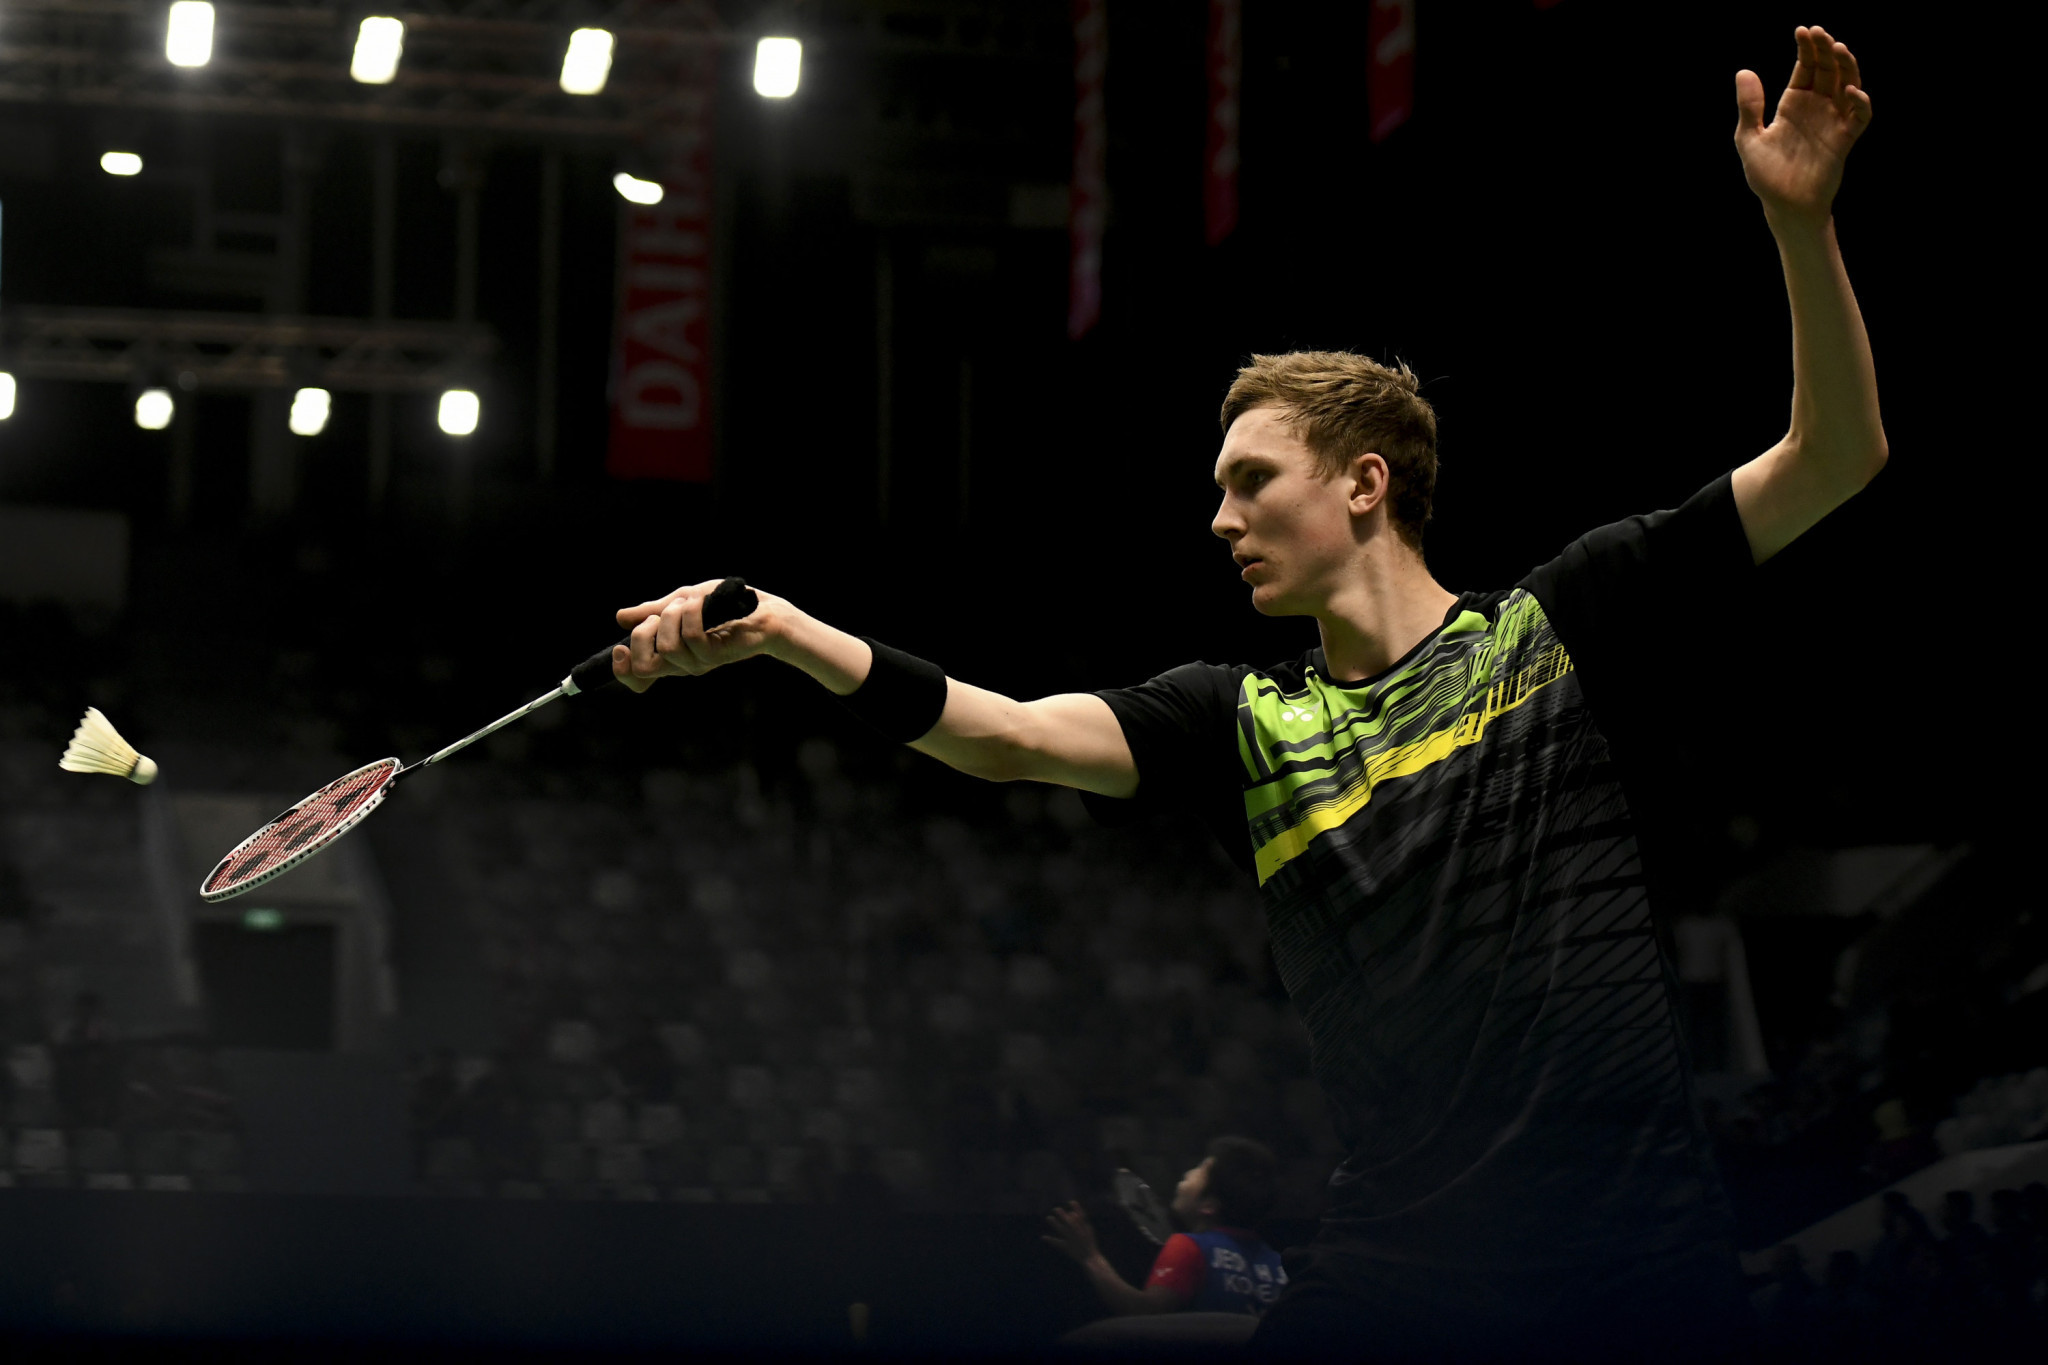 World champion Axelsen withdraws injured at BWF Indonesia Masters